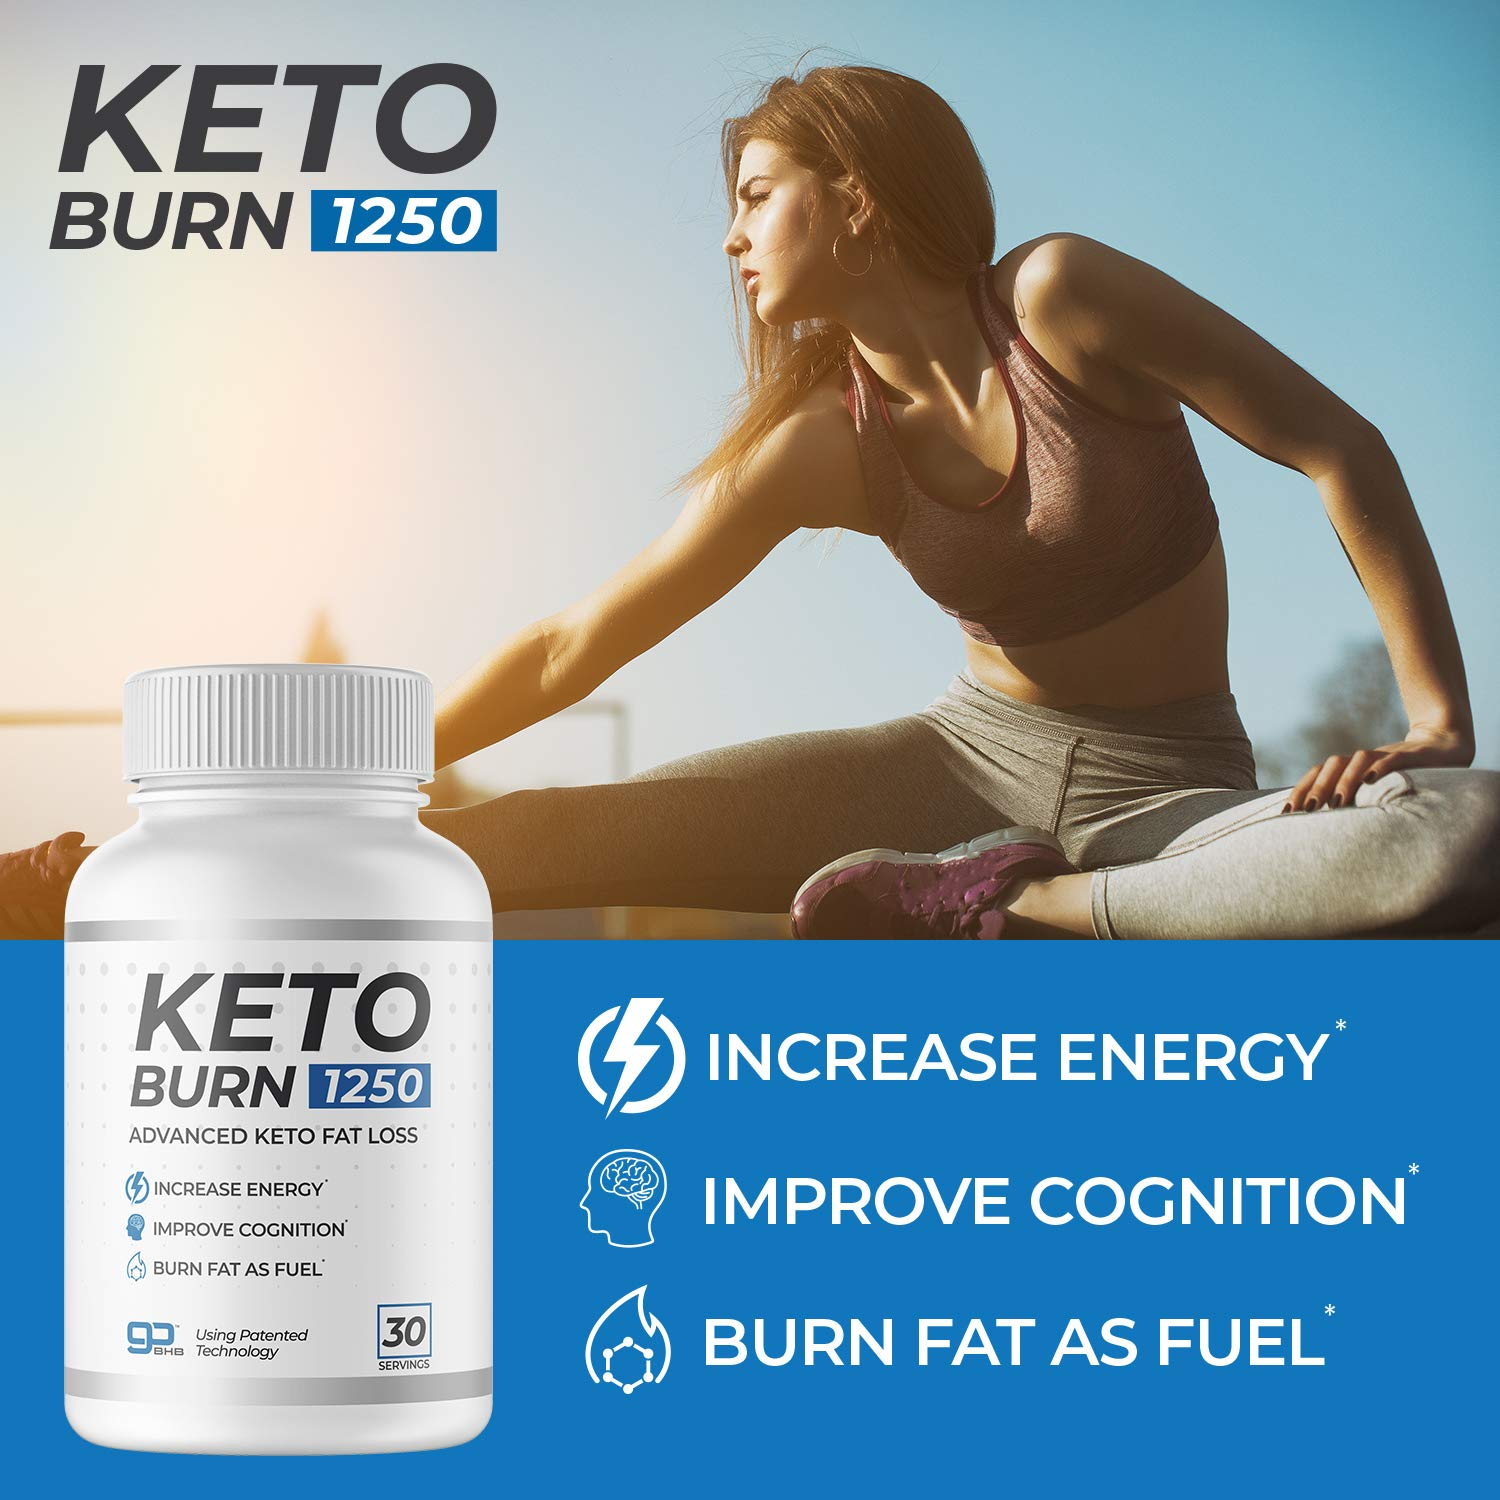 3 Bottles of KetoBurn 1250 (180 Capsules) - The ONLY Keto Pill That Uses Patented Fat Loss Technology! by KetoBurn 1250 (Image #3)